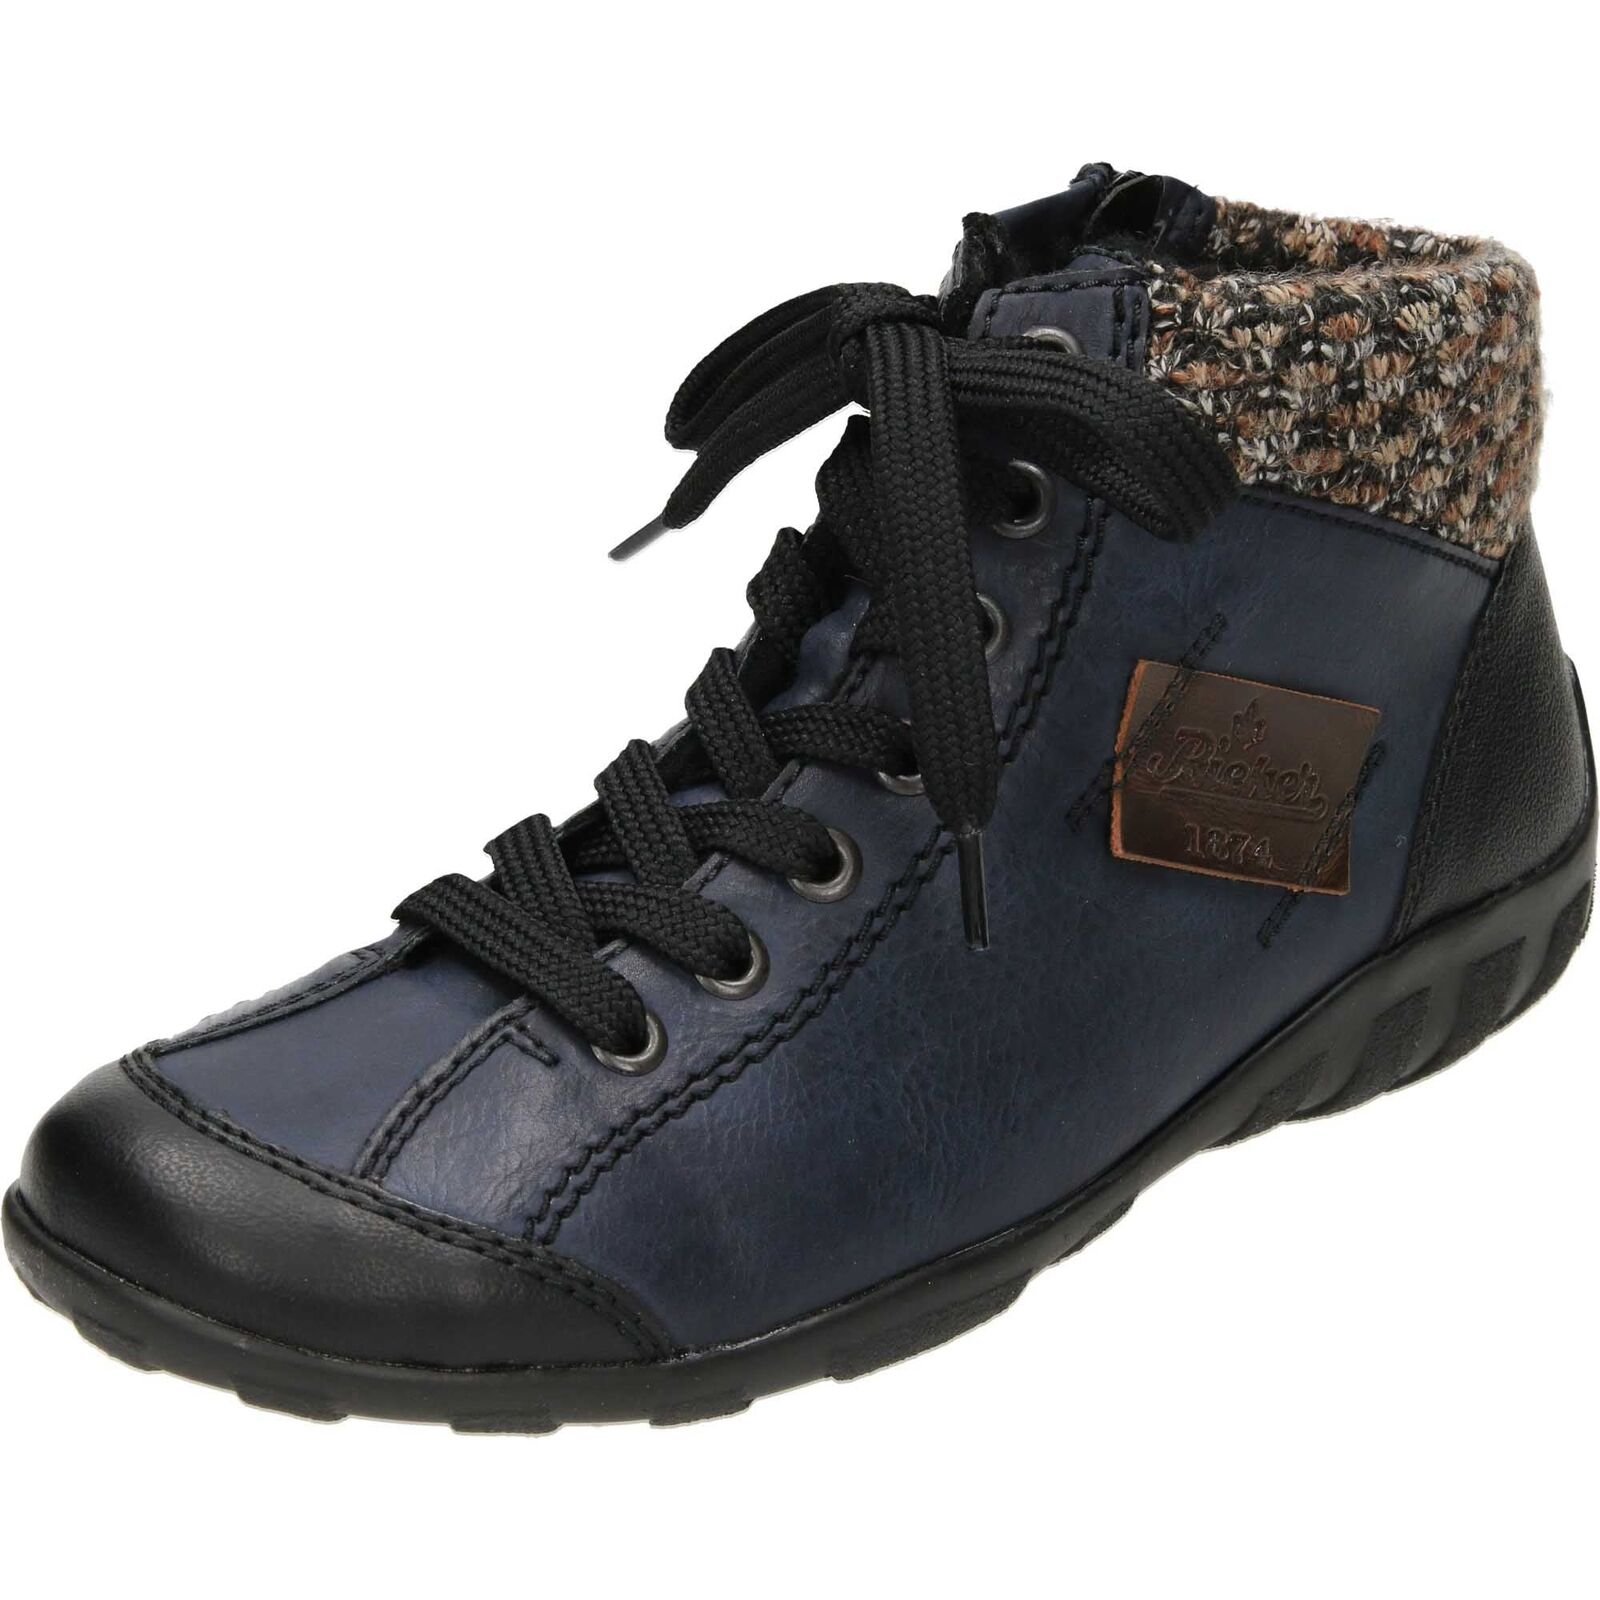 Rieker L6540 Ankle Stiefel Lace Up Zip High Top Trainers Schuhes ROT/Blau